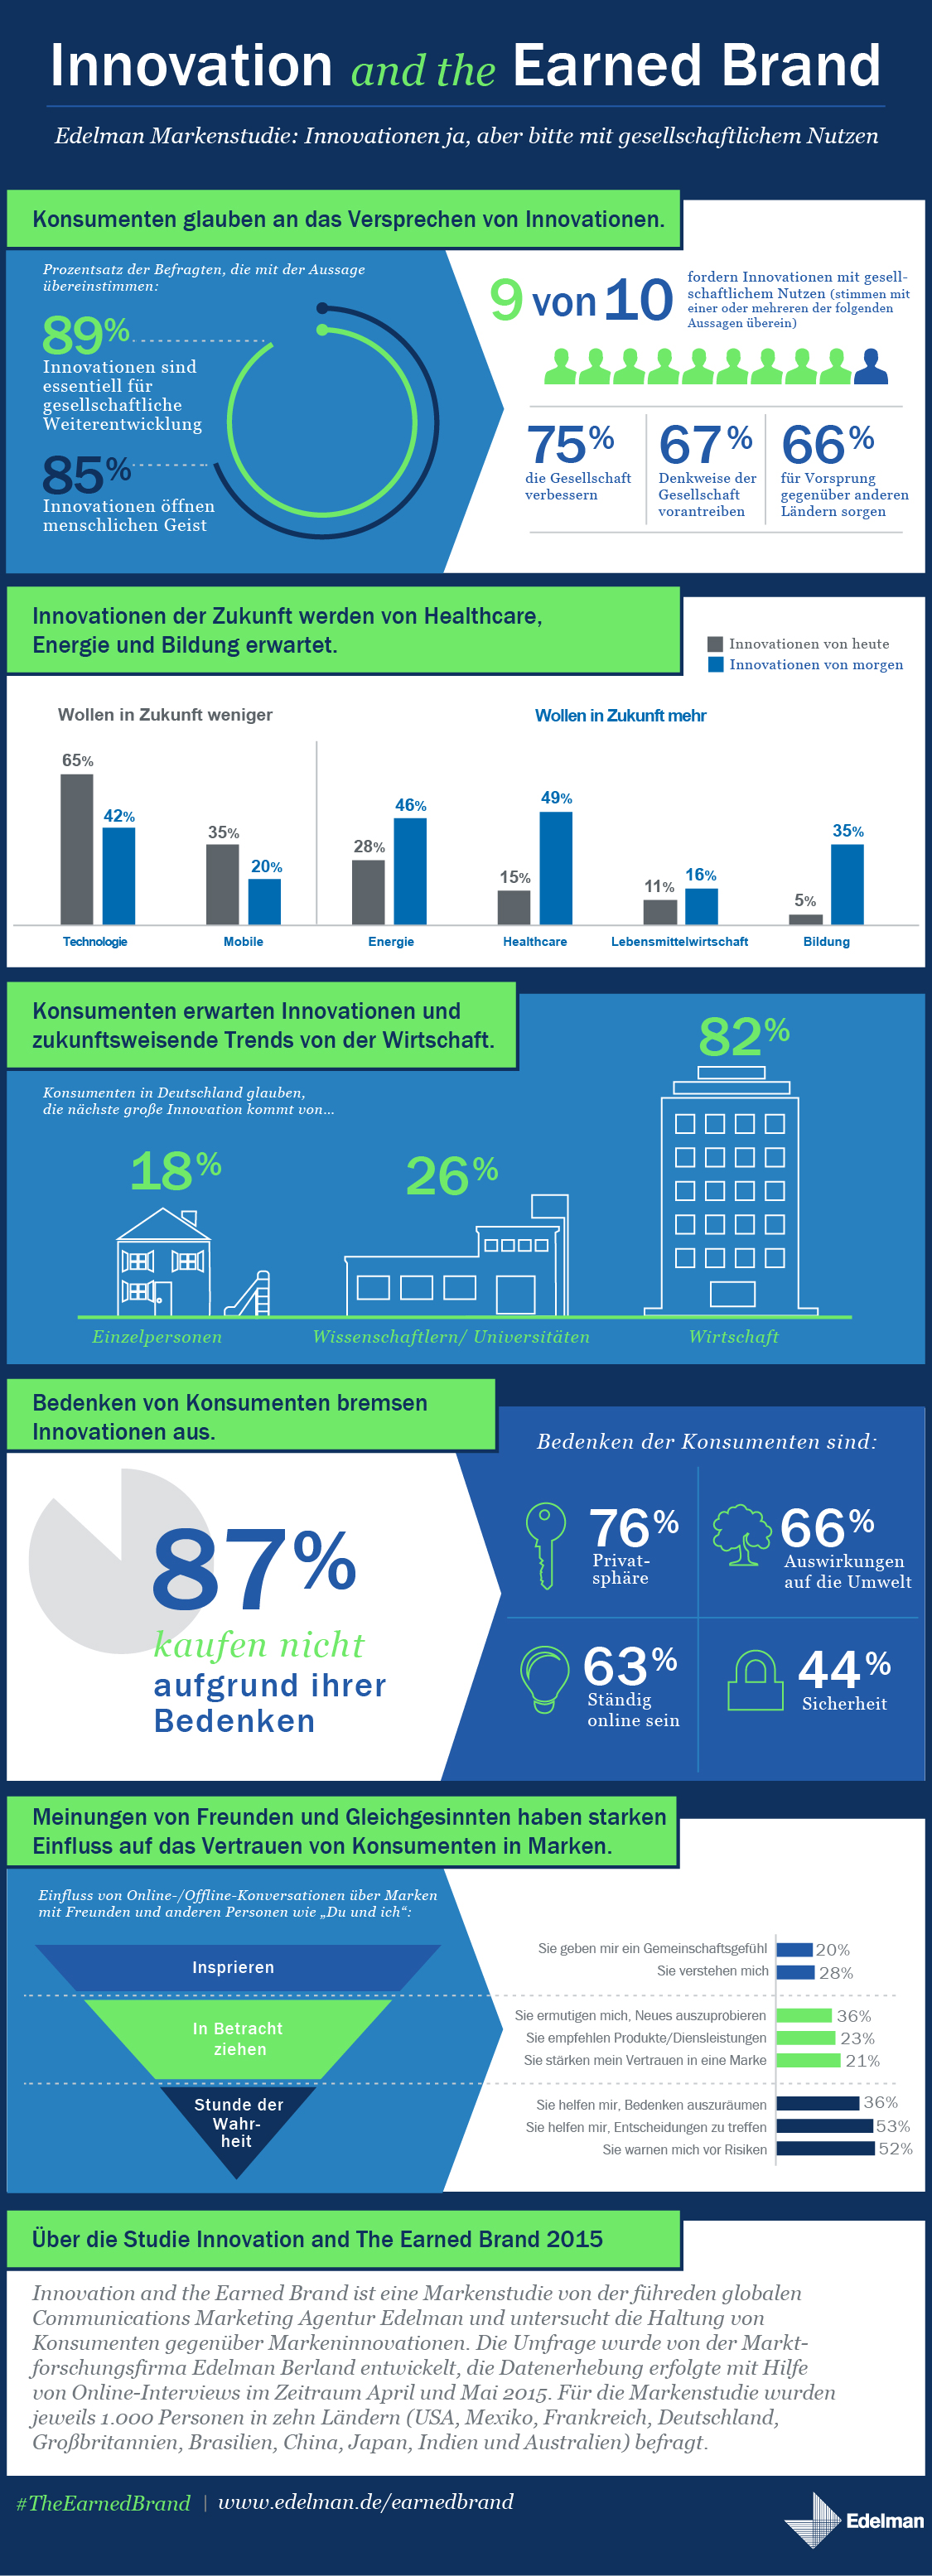 Infografik Edelman Markenstudie Innovation and the Earned Brand